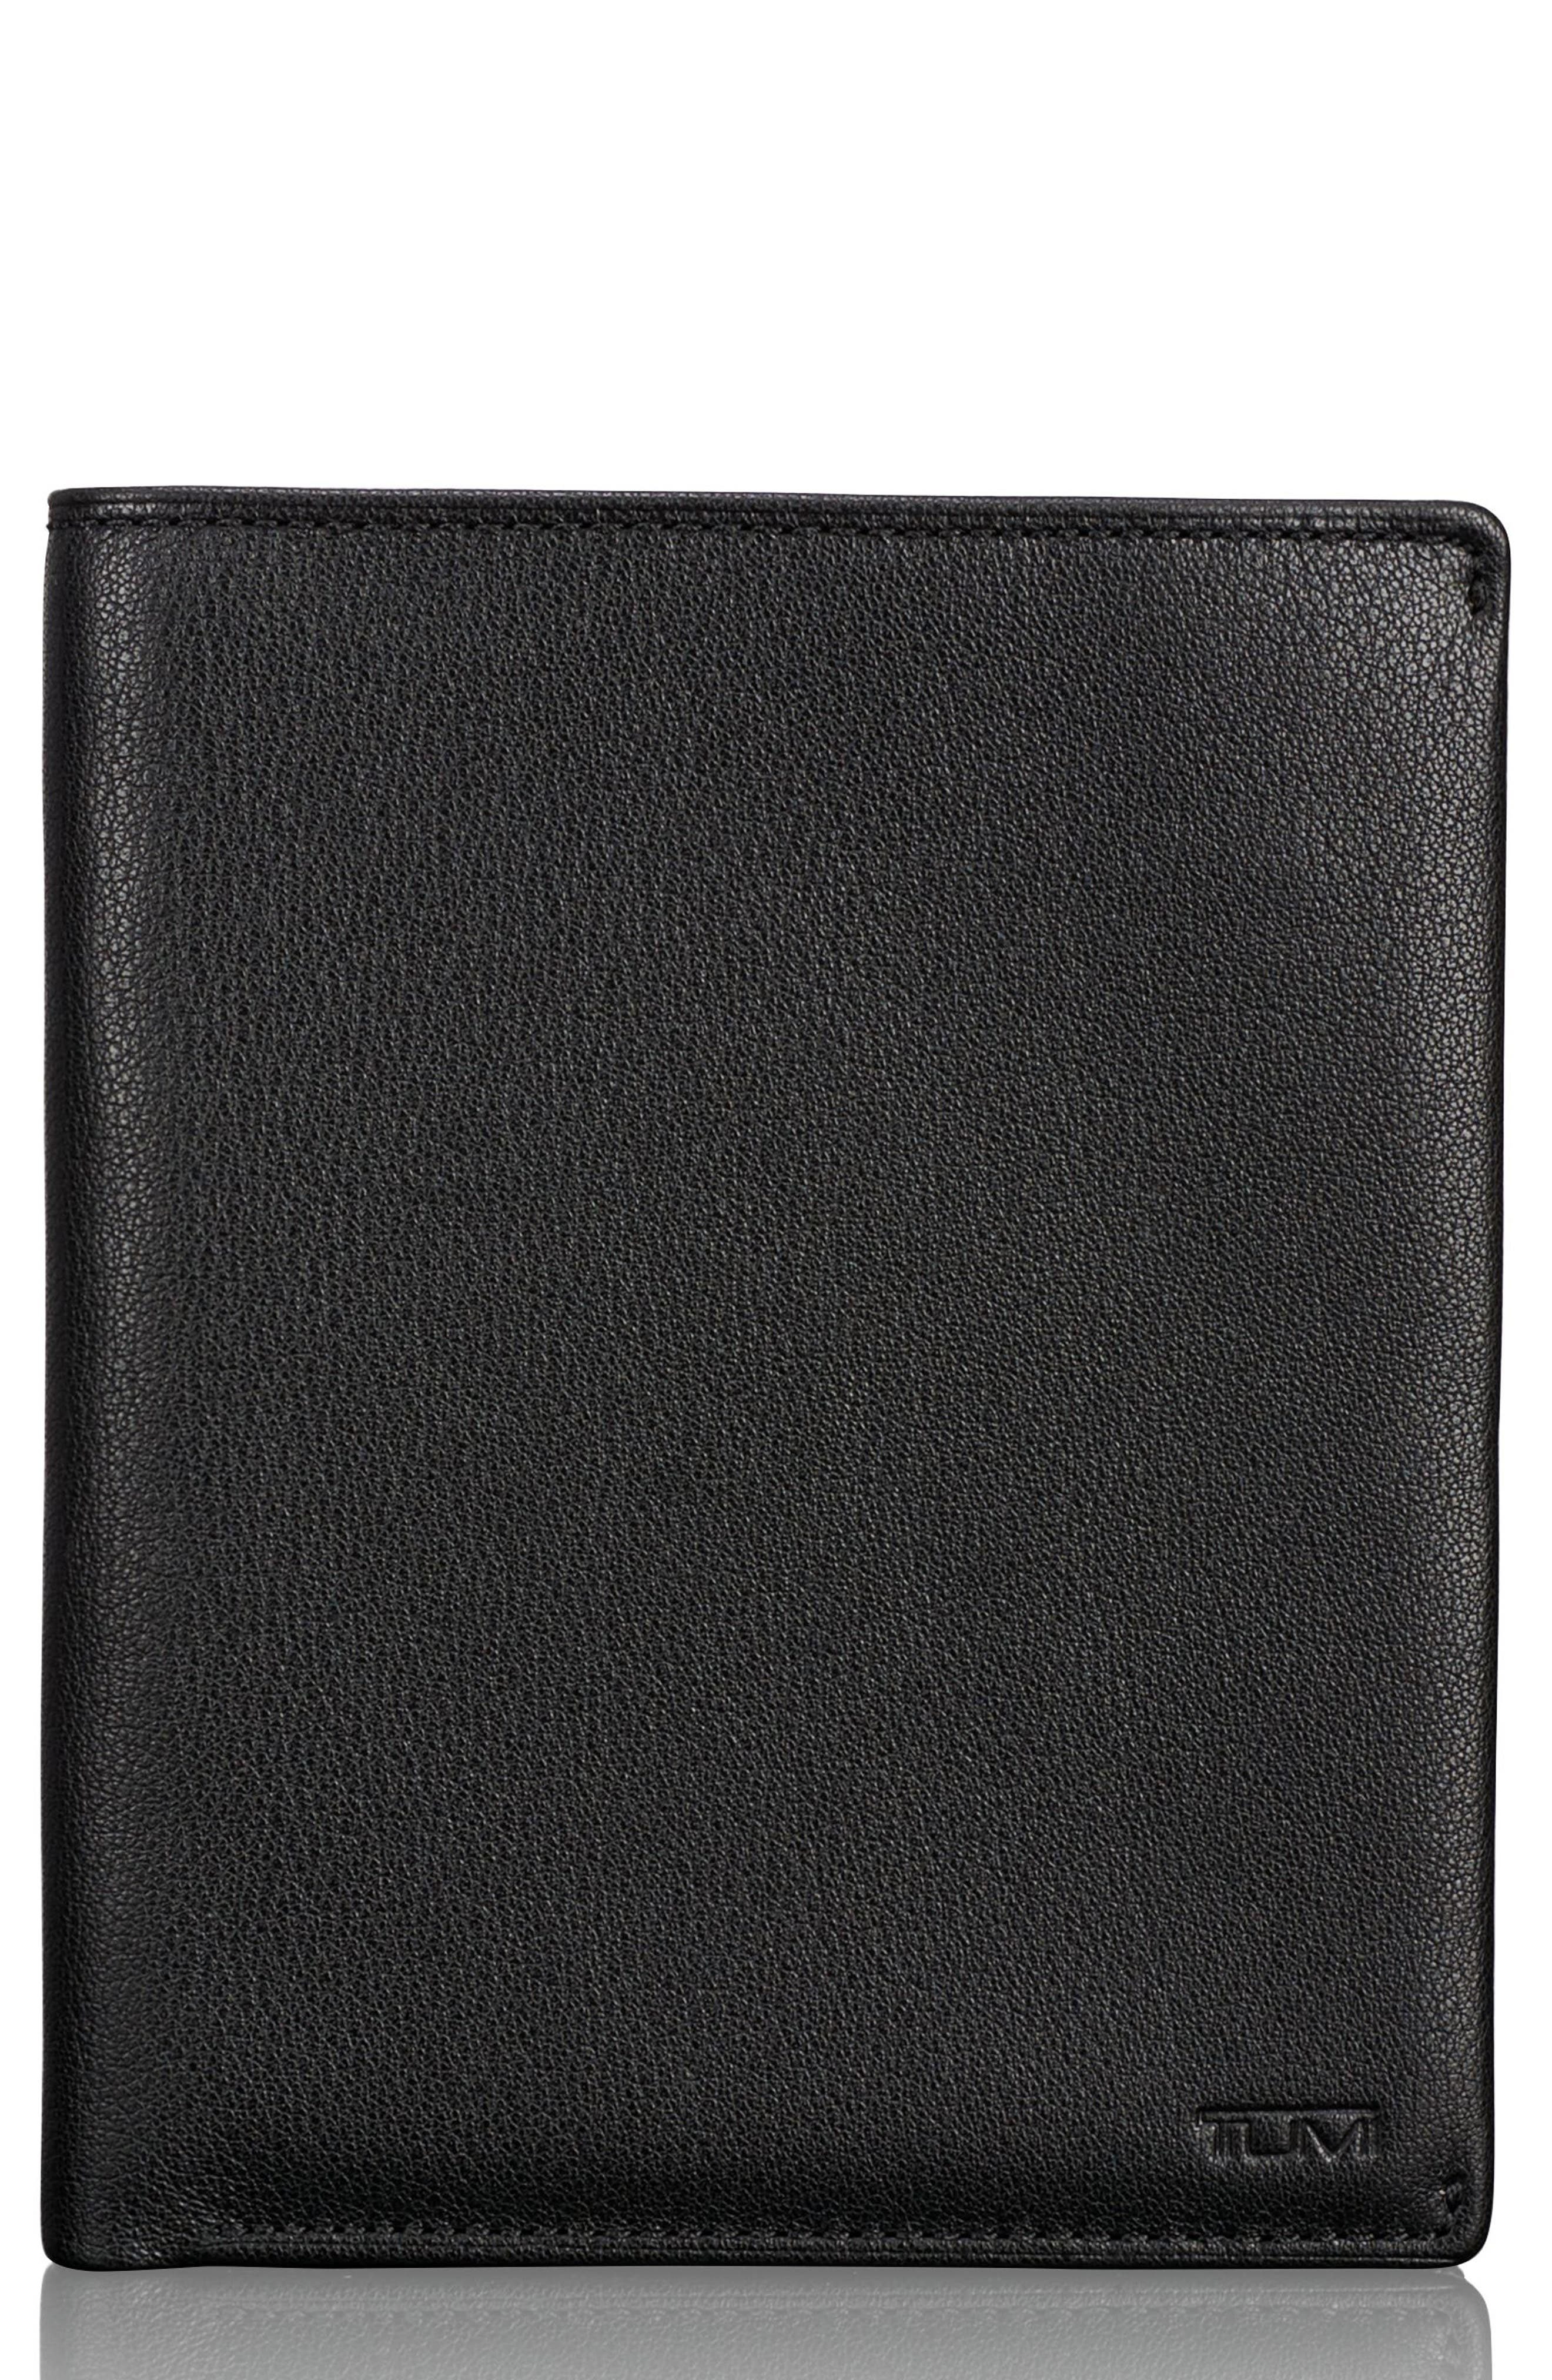 Alternate Image 1 Selected - Tumi Leather Passport Case